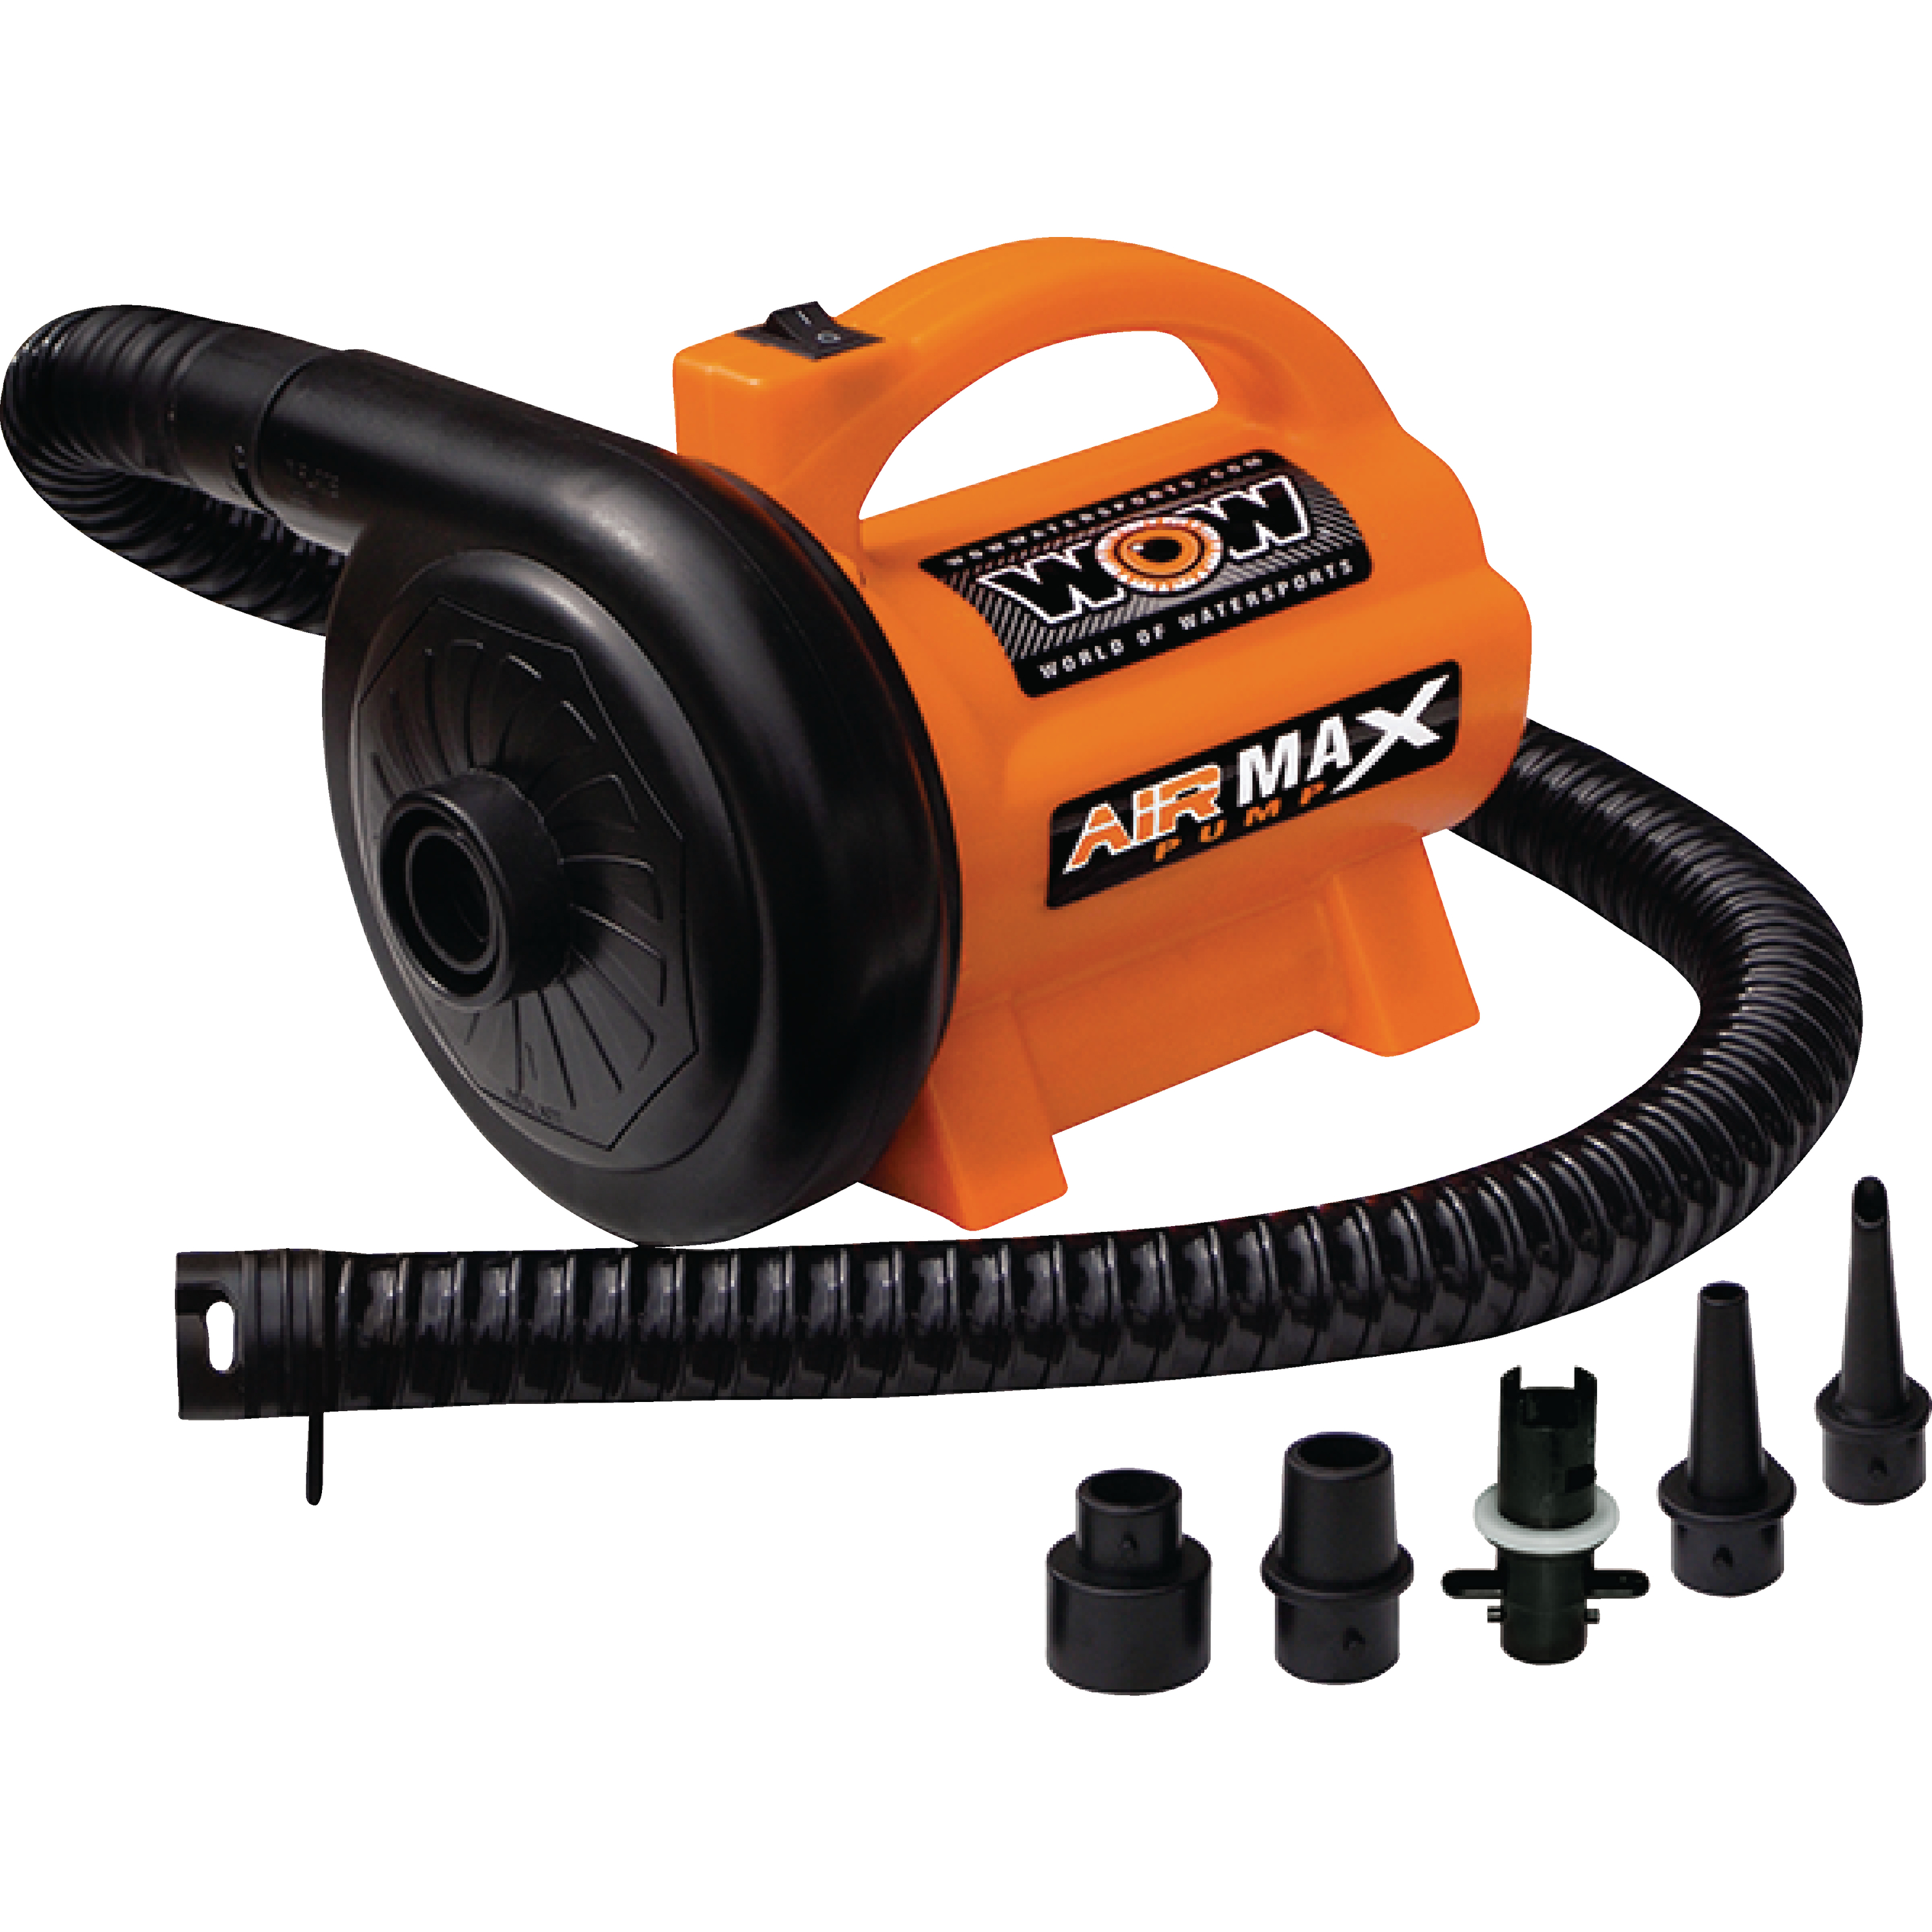 WOW 164010 Air Max 120V Pump for Towable Tubes